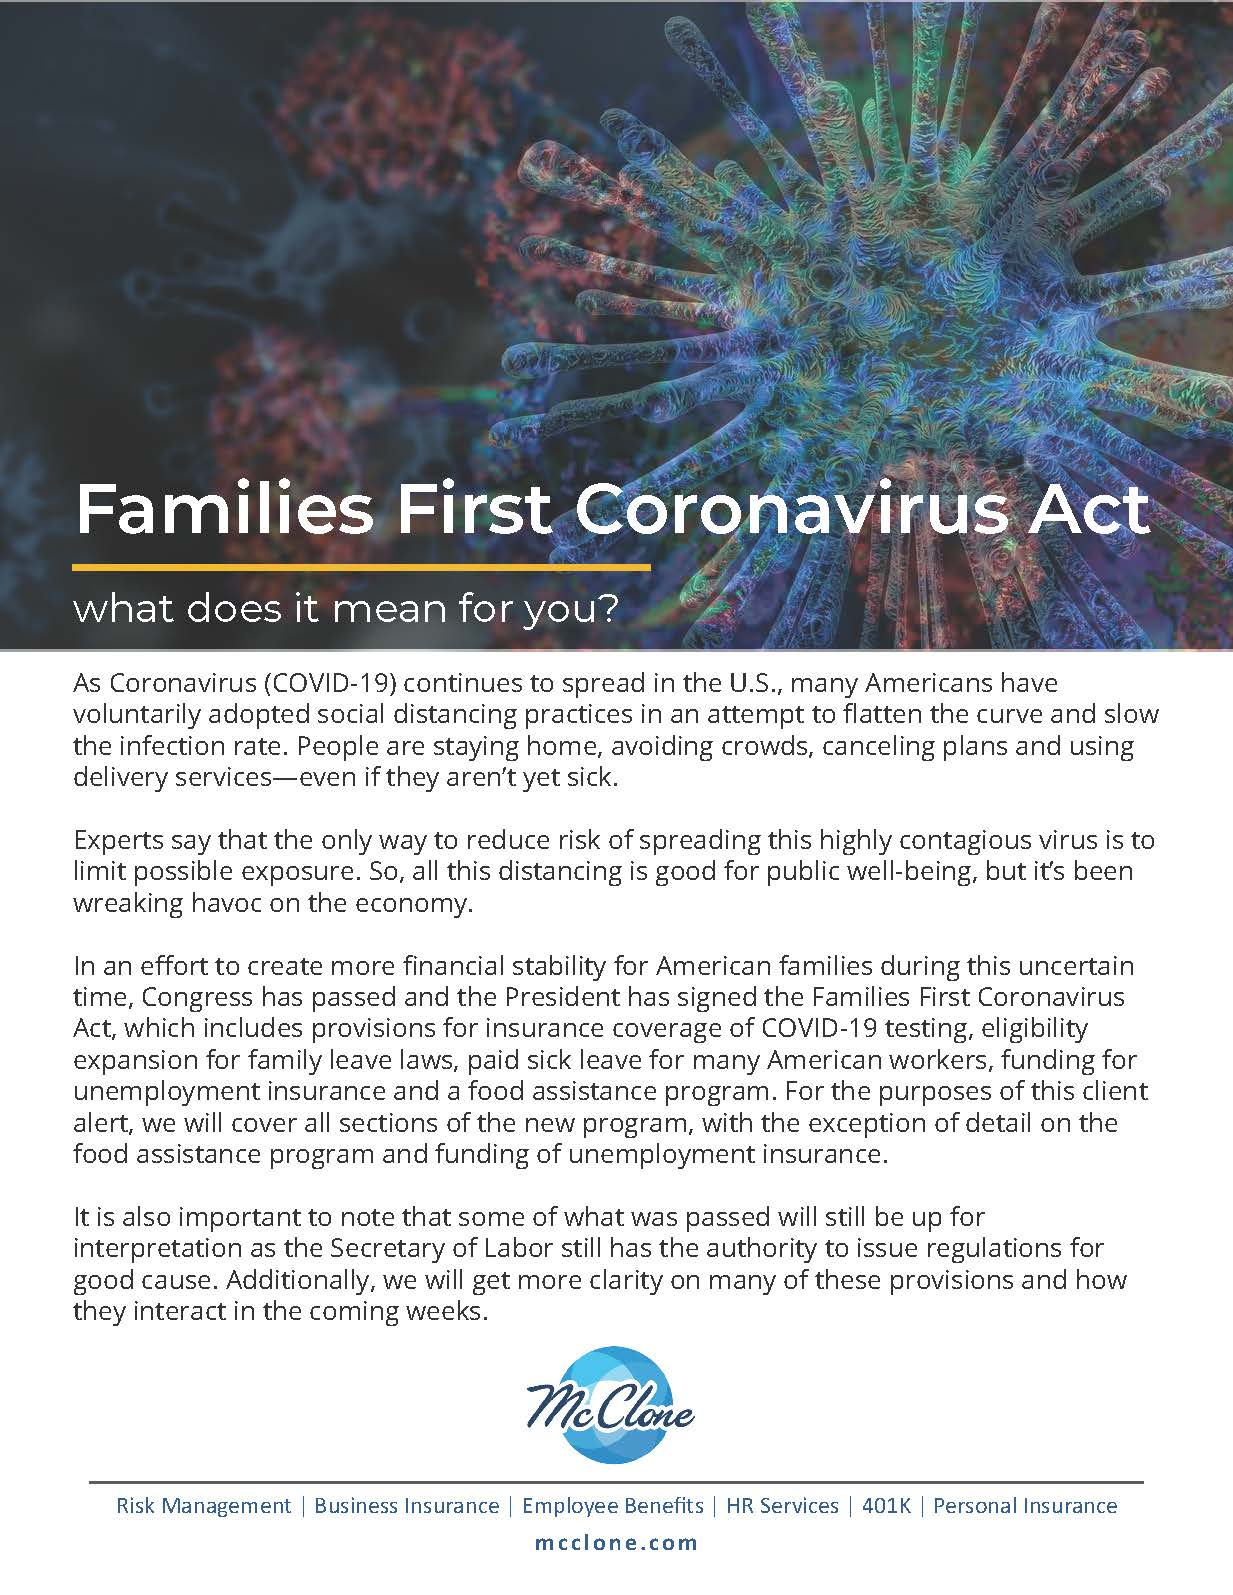 Families First Coronavirus Act1_Page_1